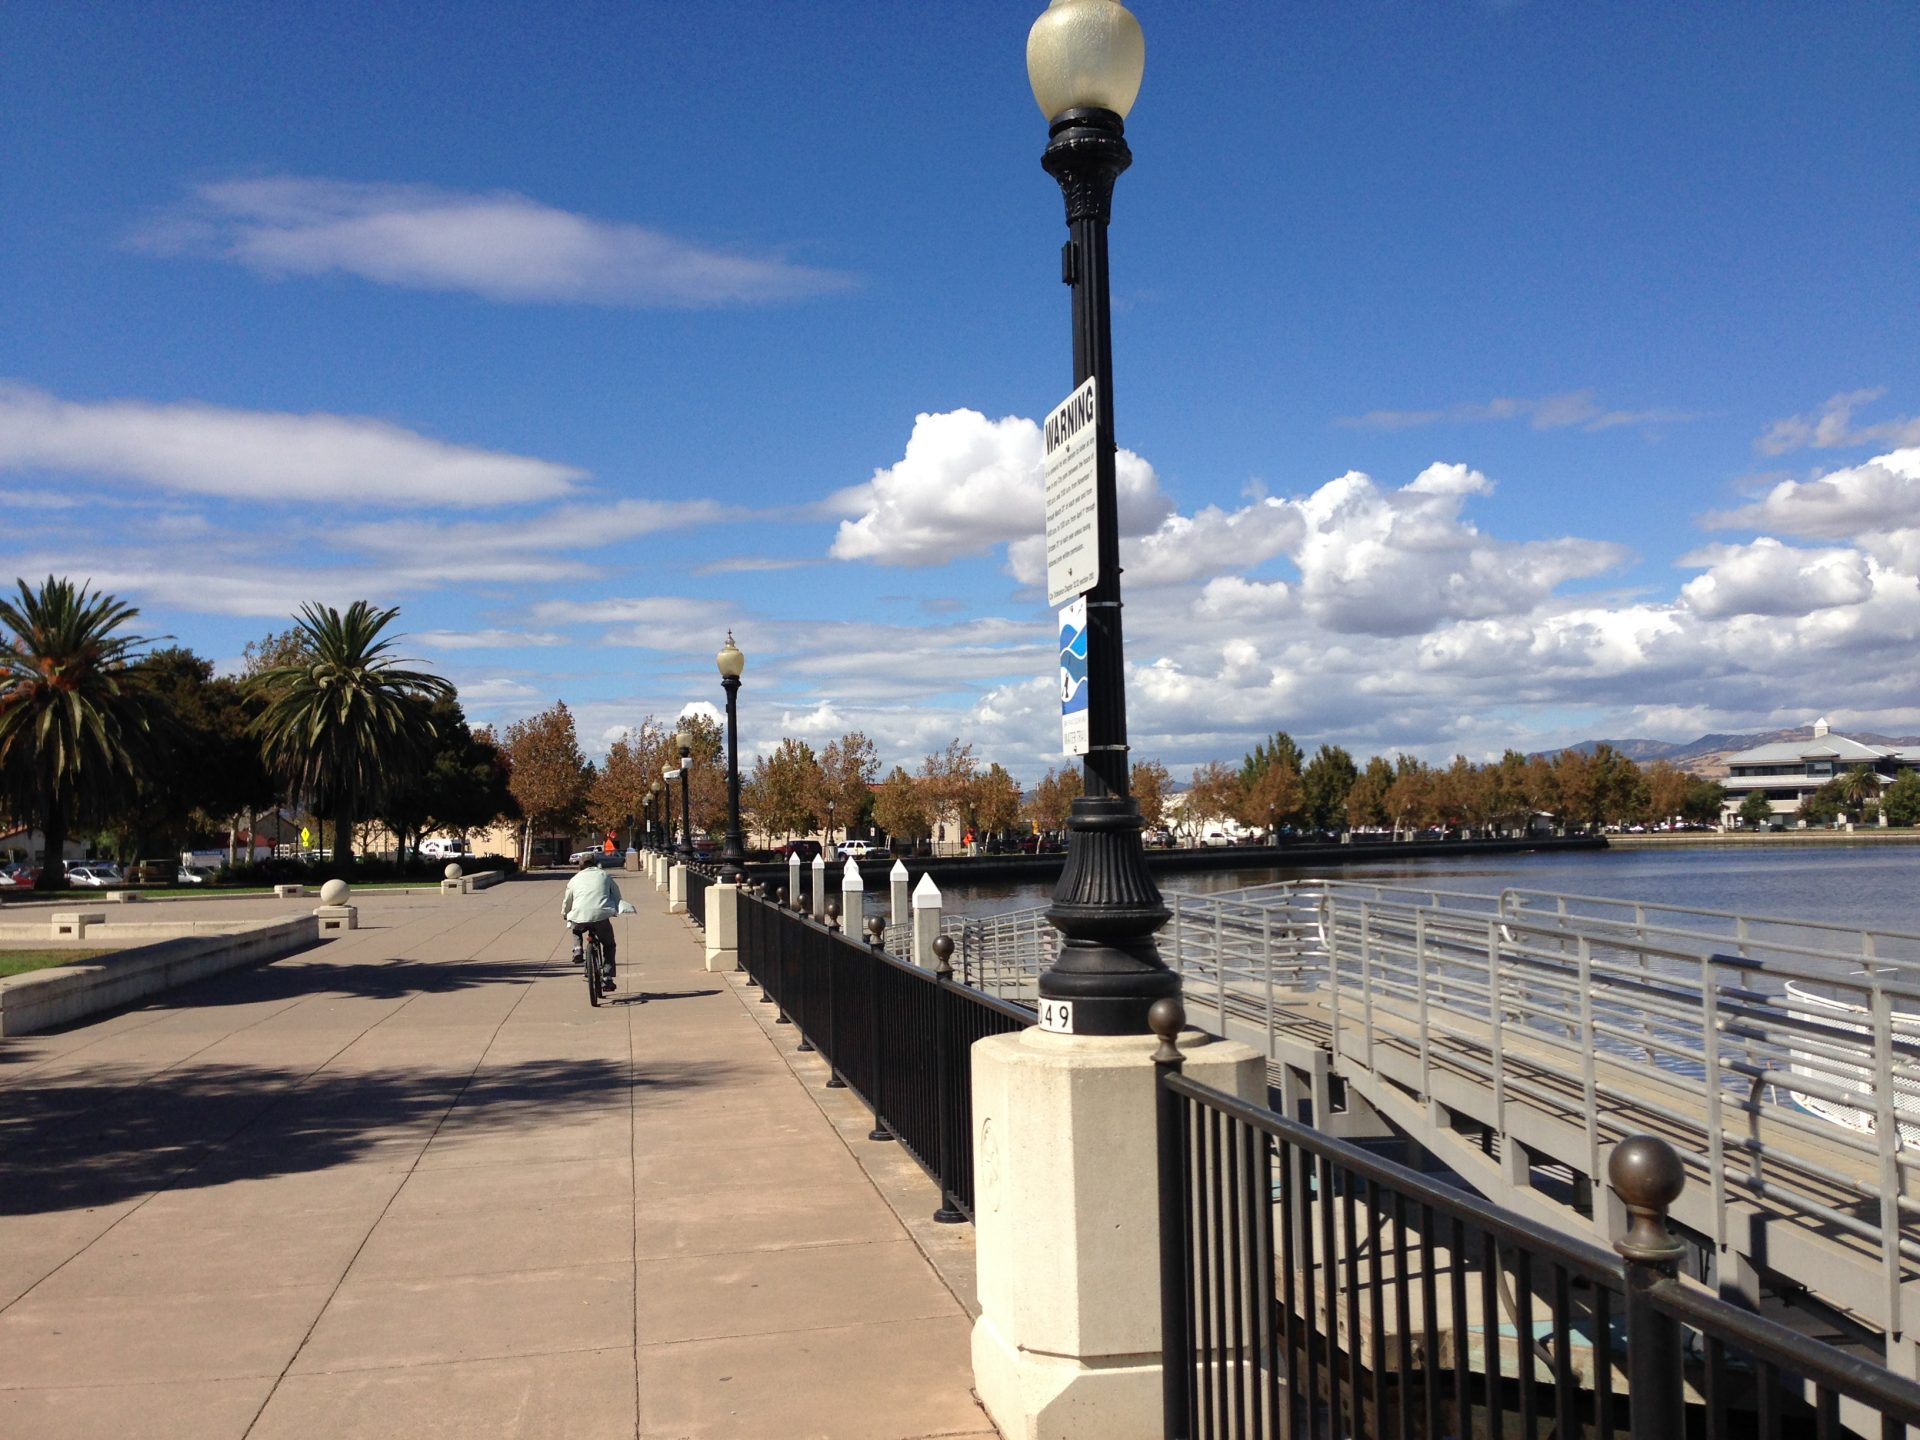 riverfront walkway, with bicyclist